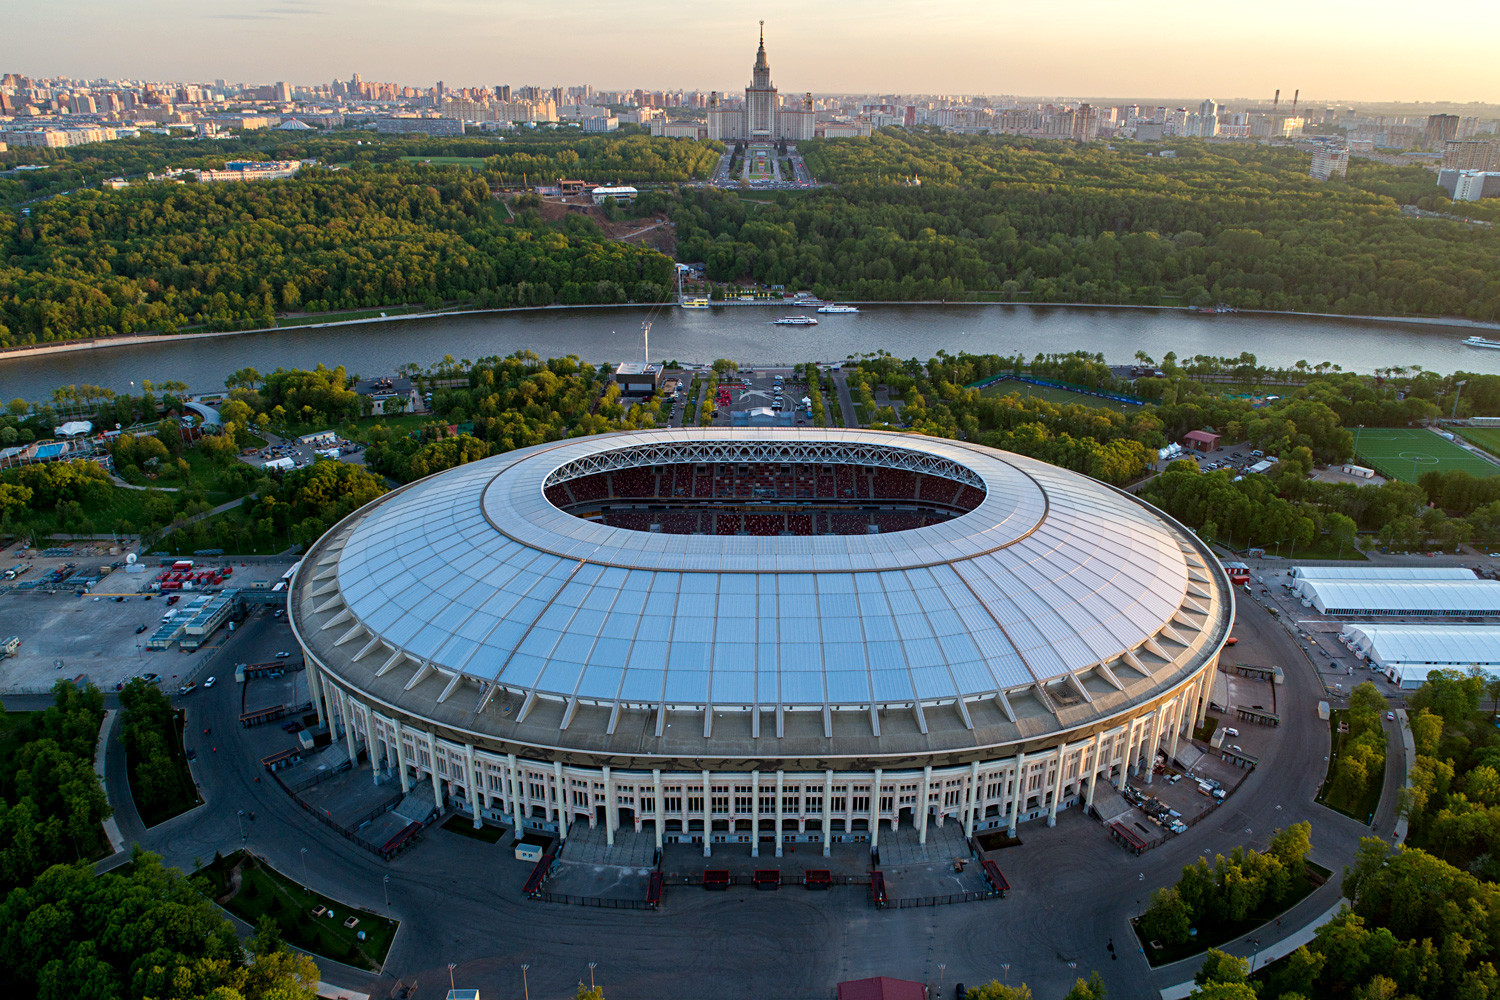 An aerial view of Luzhniki Stadium